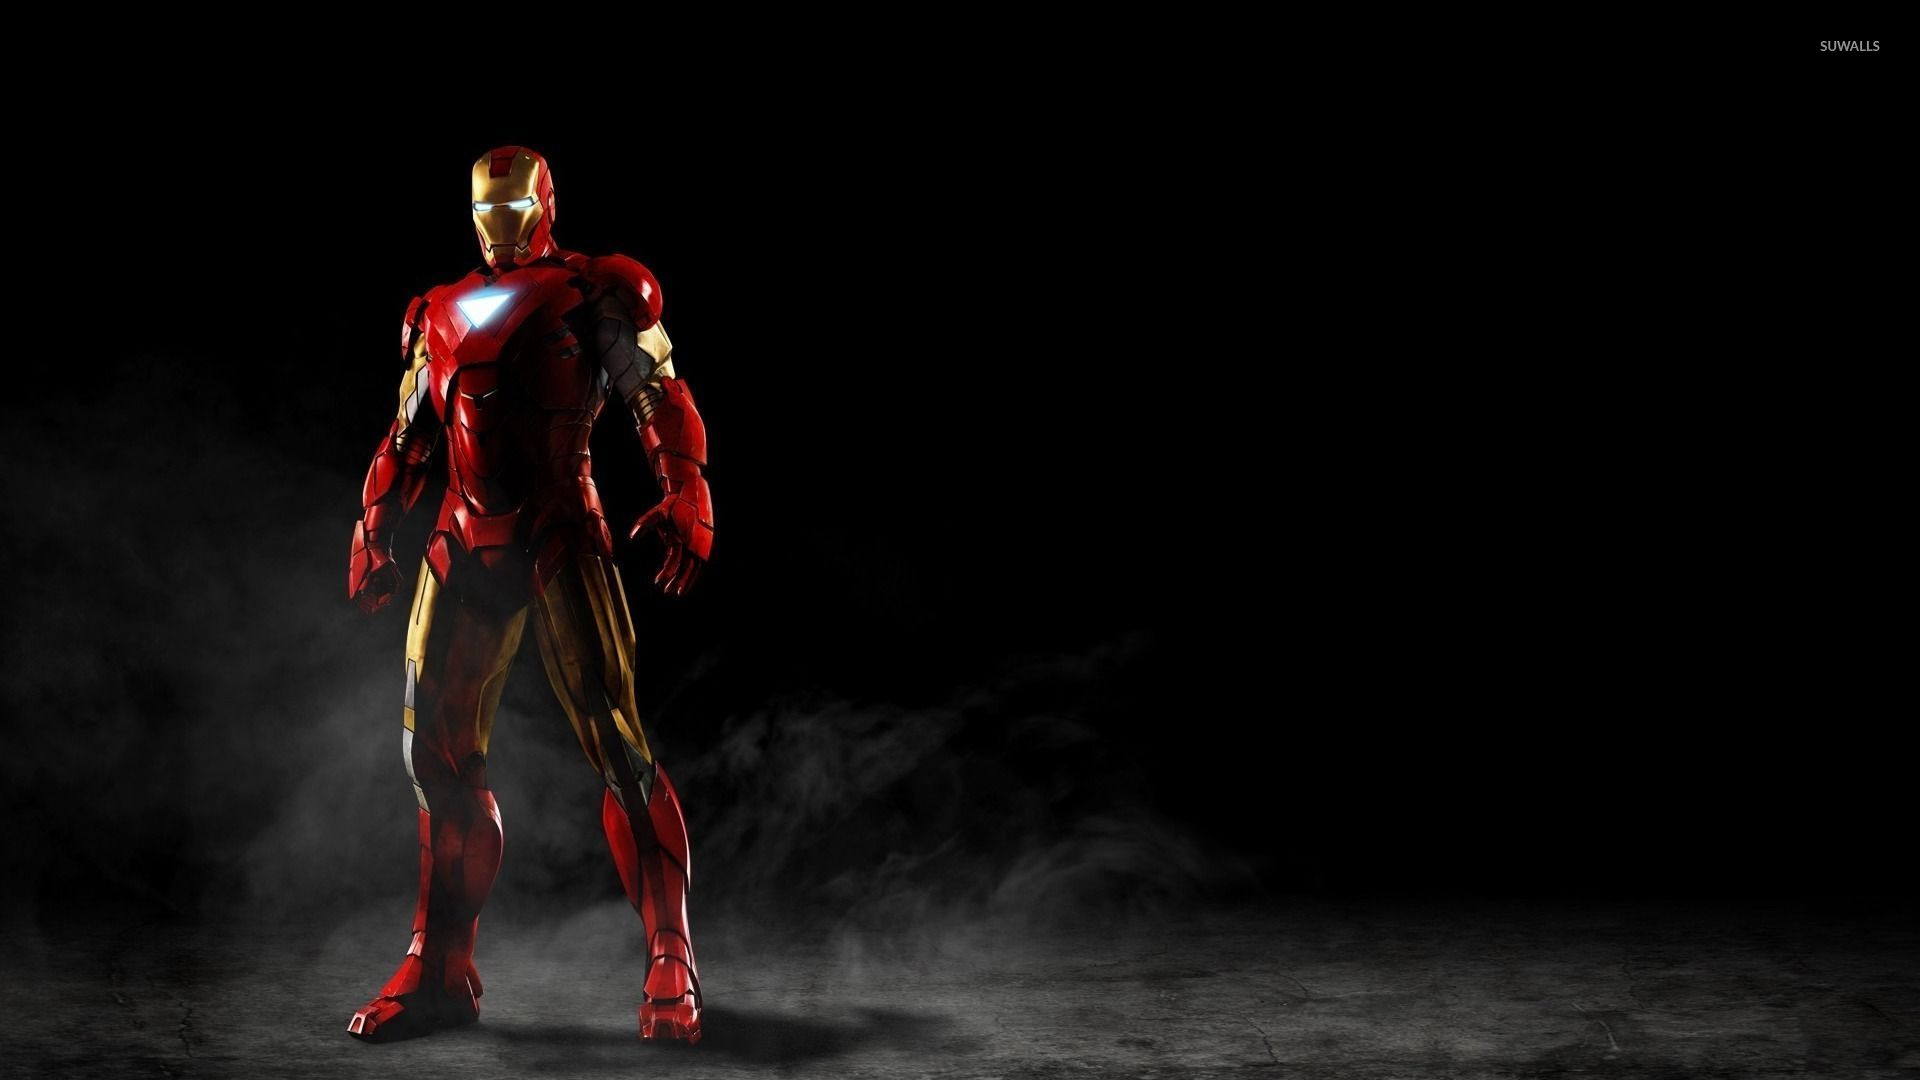 Iron Man Standing In The Smoke Wallpaper